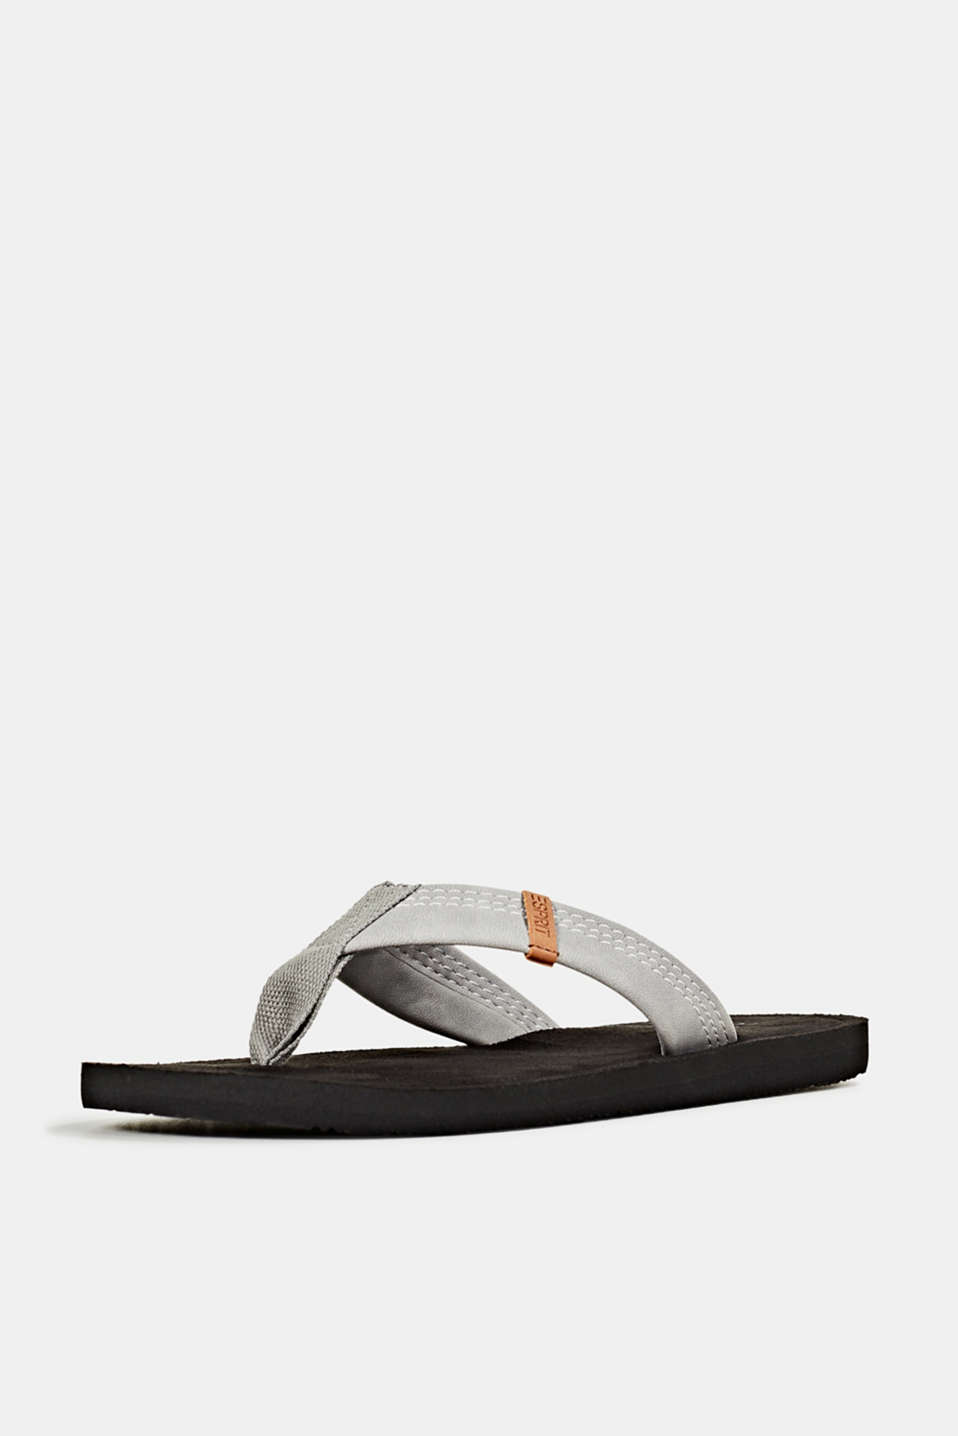 Thong sandals with a wide strap, GUNMETAL, detail image number 2